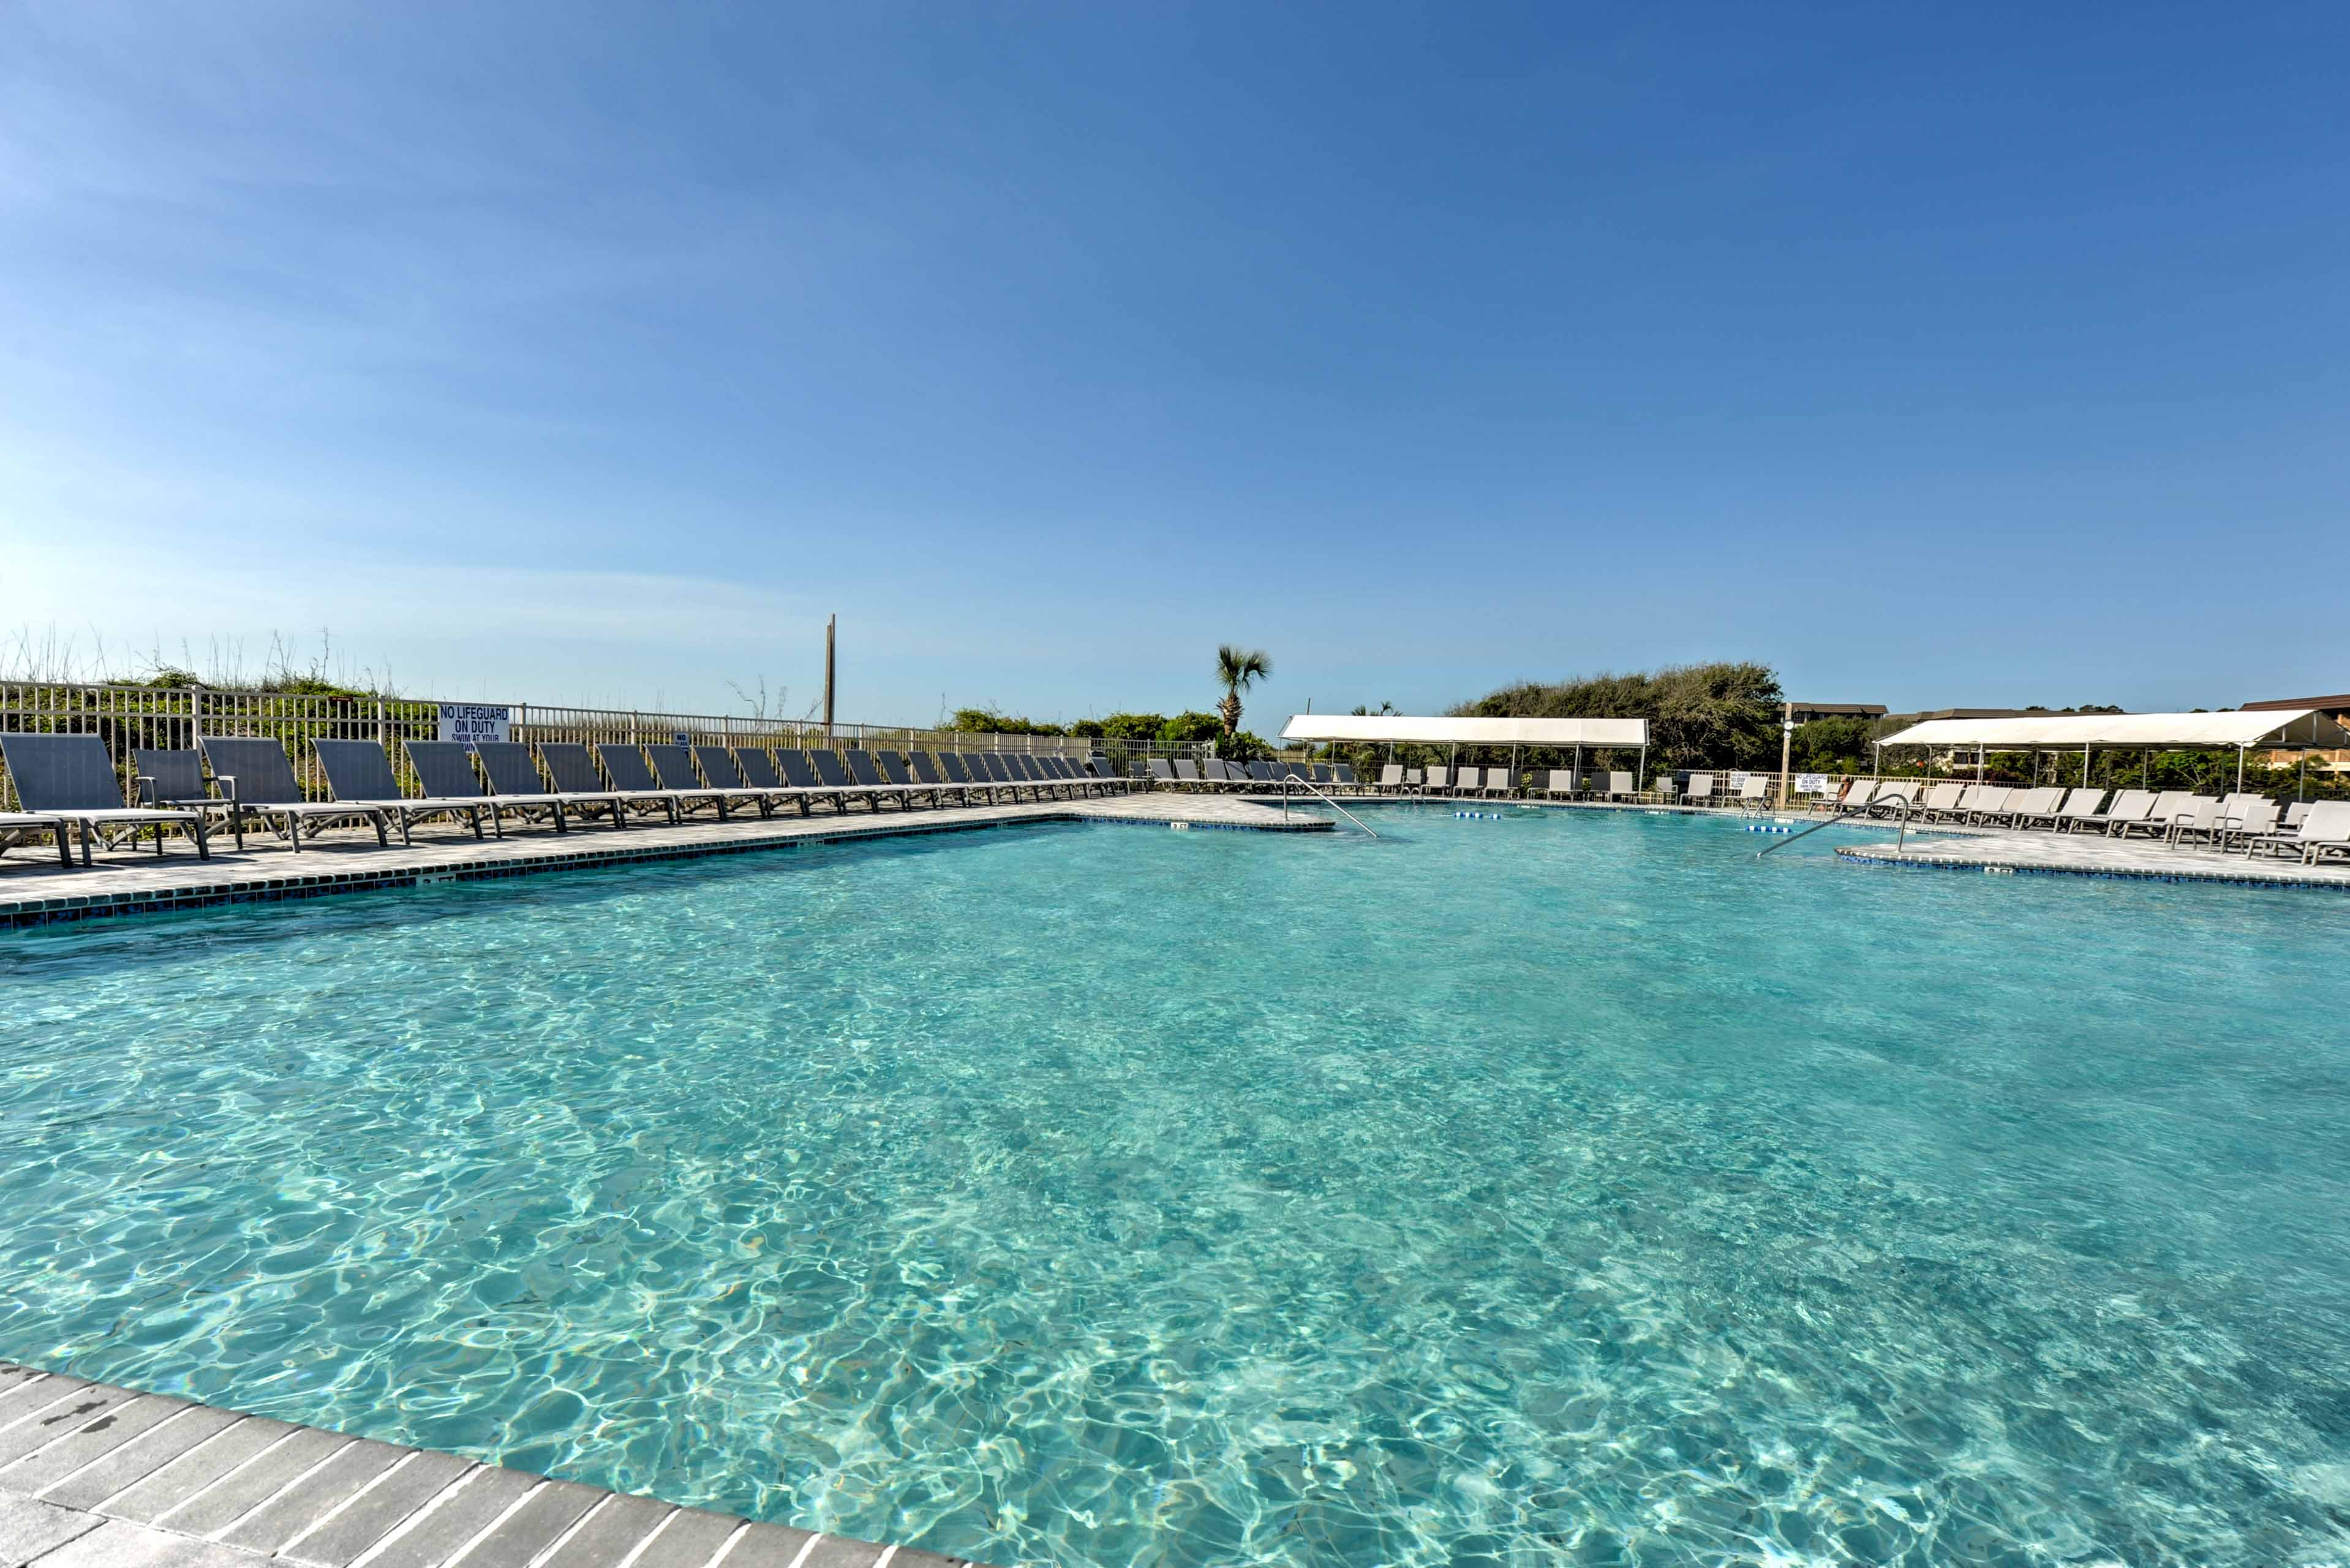 You'll have access to unbeatable community amenities like this outdoor pool.